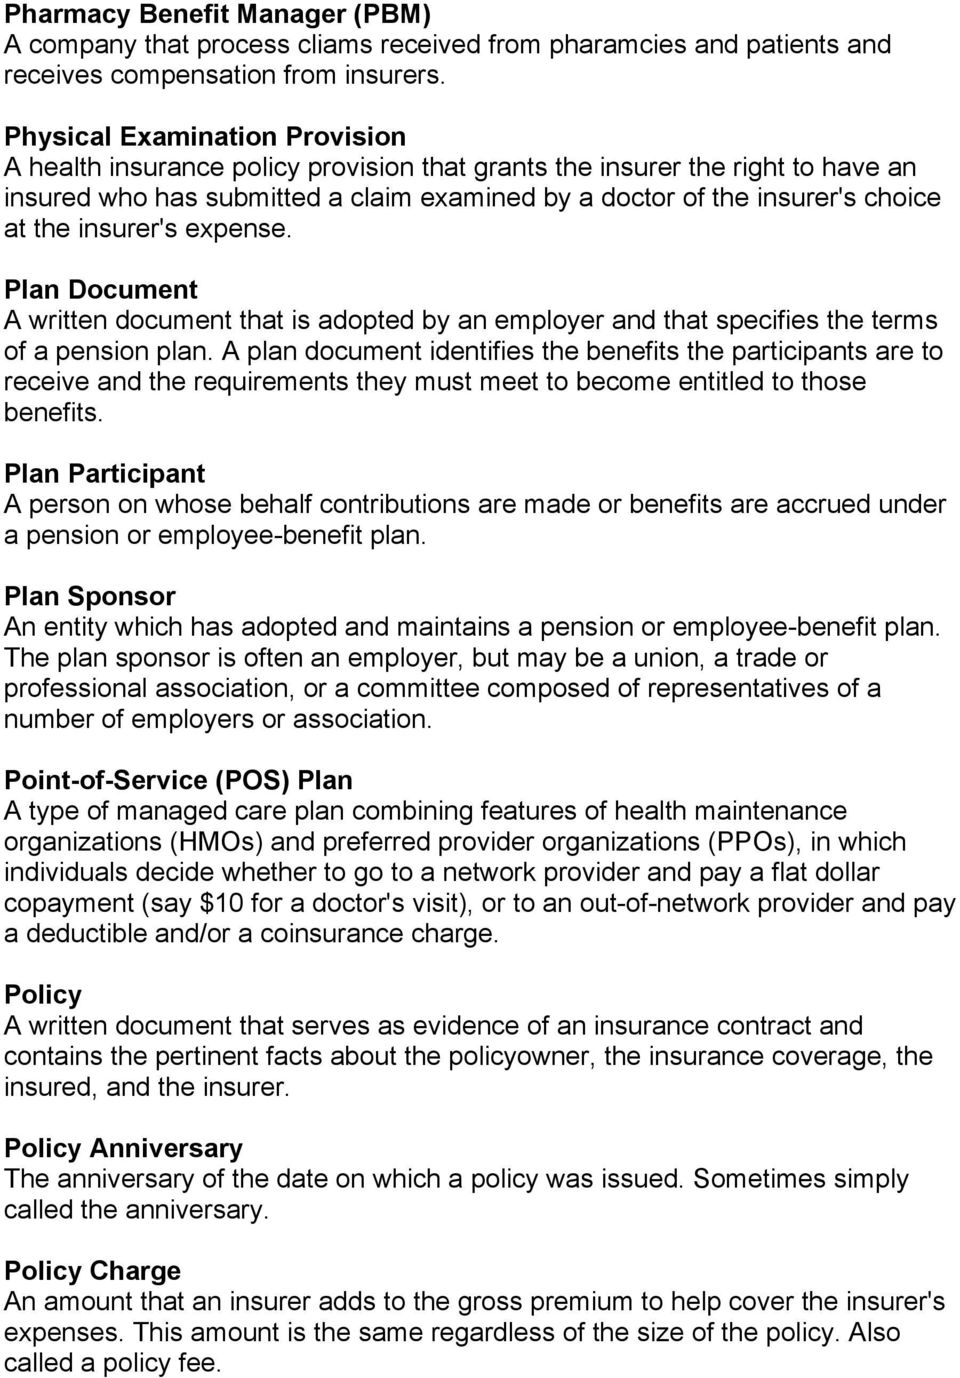 insurer's expense. Plan Document A written document that is adopted by an employer and that specifies the terms of a pension plan.